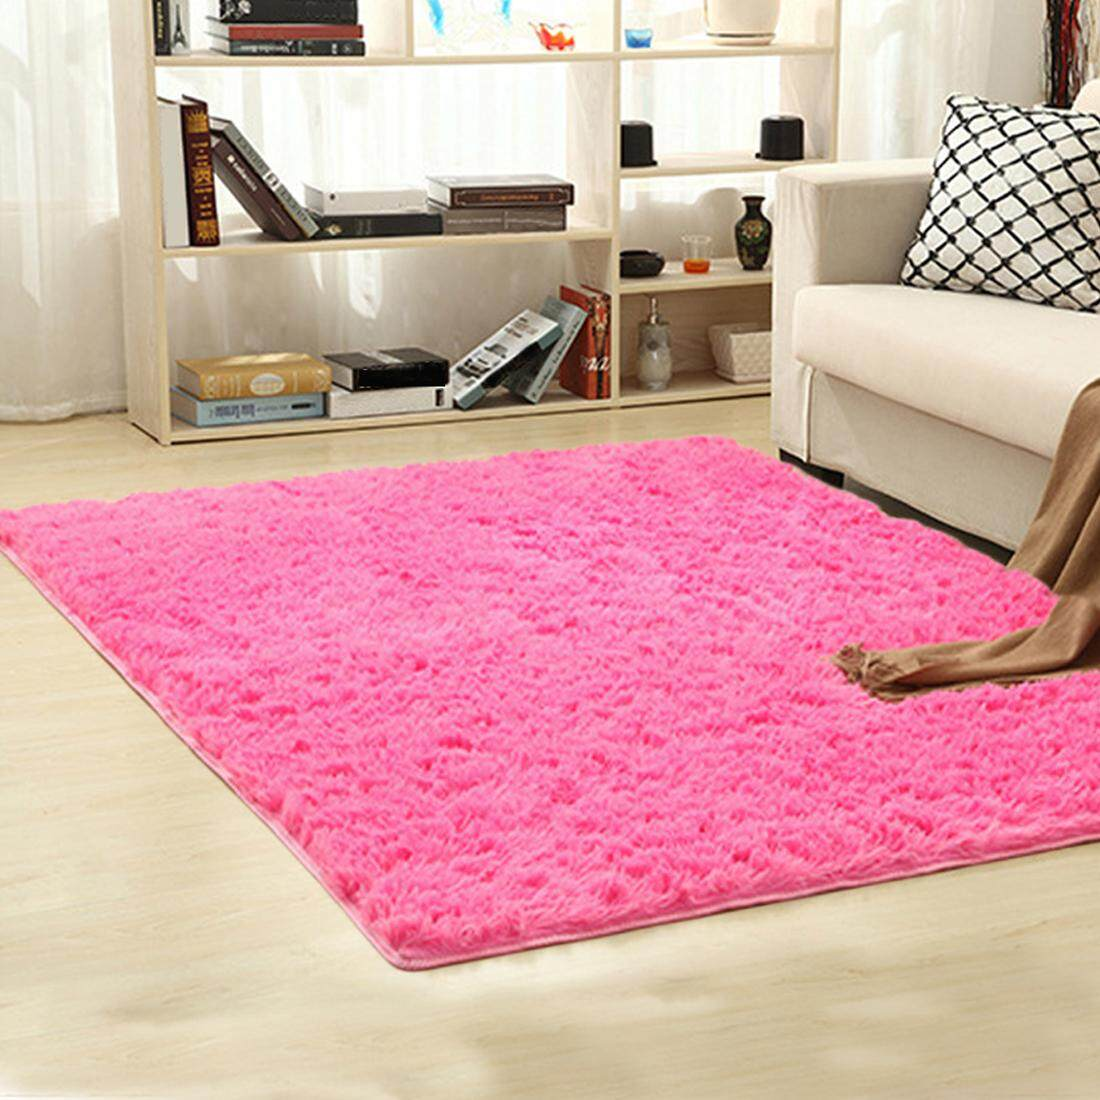 living room floor mats beach idea rug carpet for sale home carpets prices brands review in large size shaggy fluffy area soft mat anti skid 160 200cm